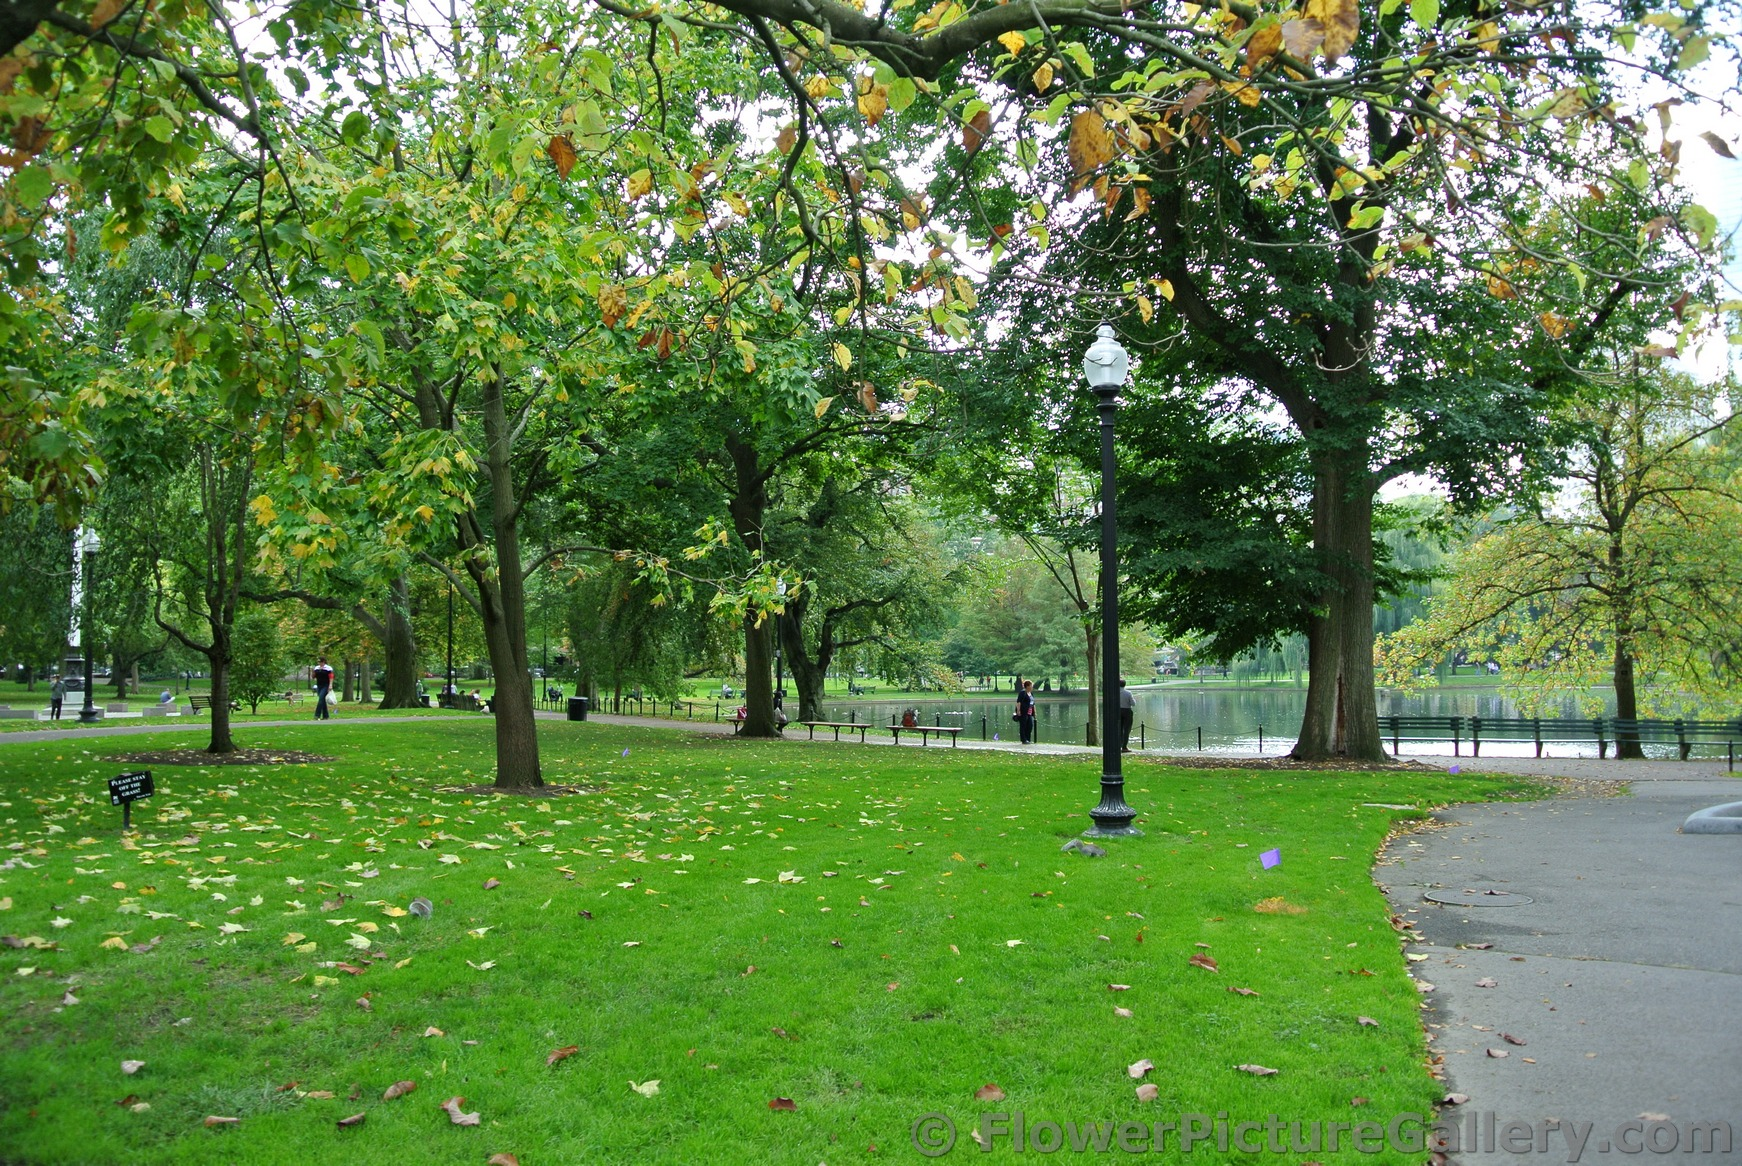 Green grass and trees with pond in background at Boston Public Garden.jpg